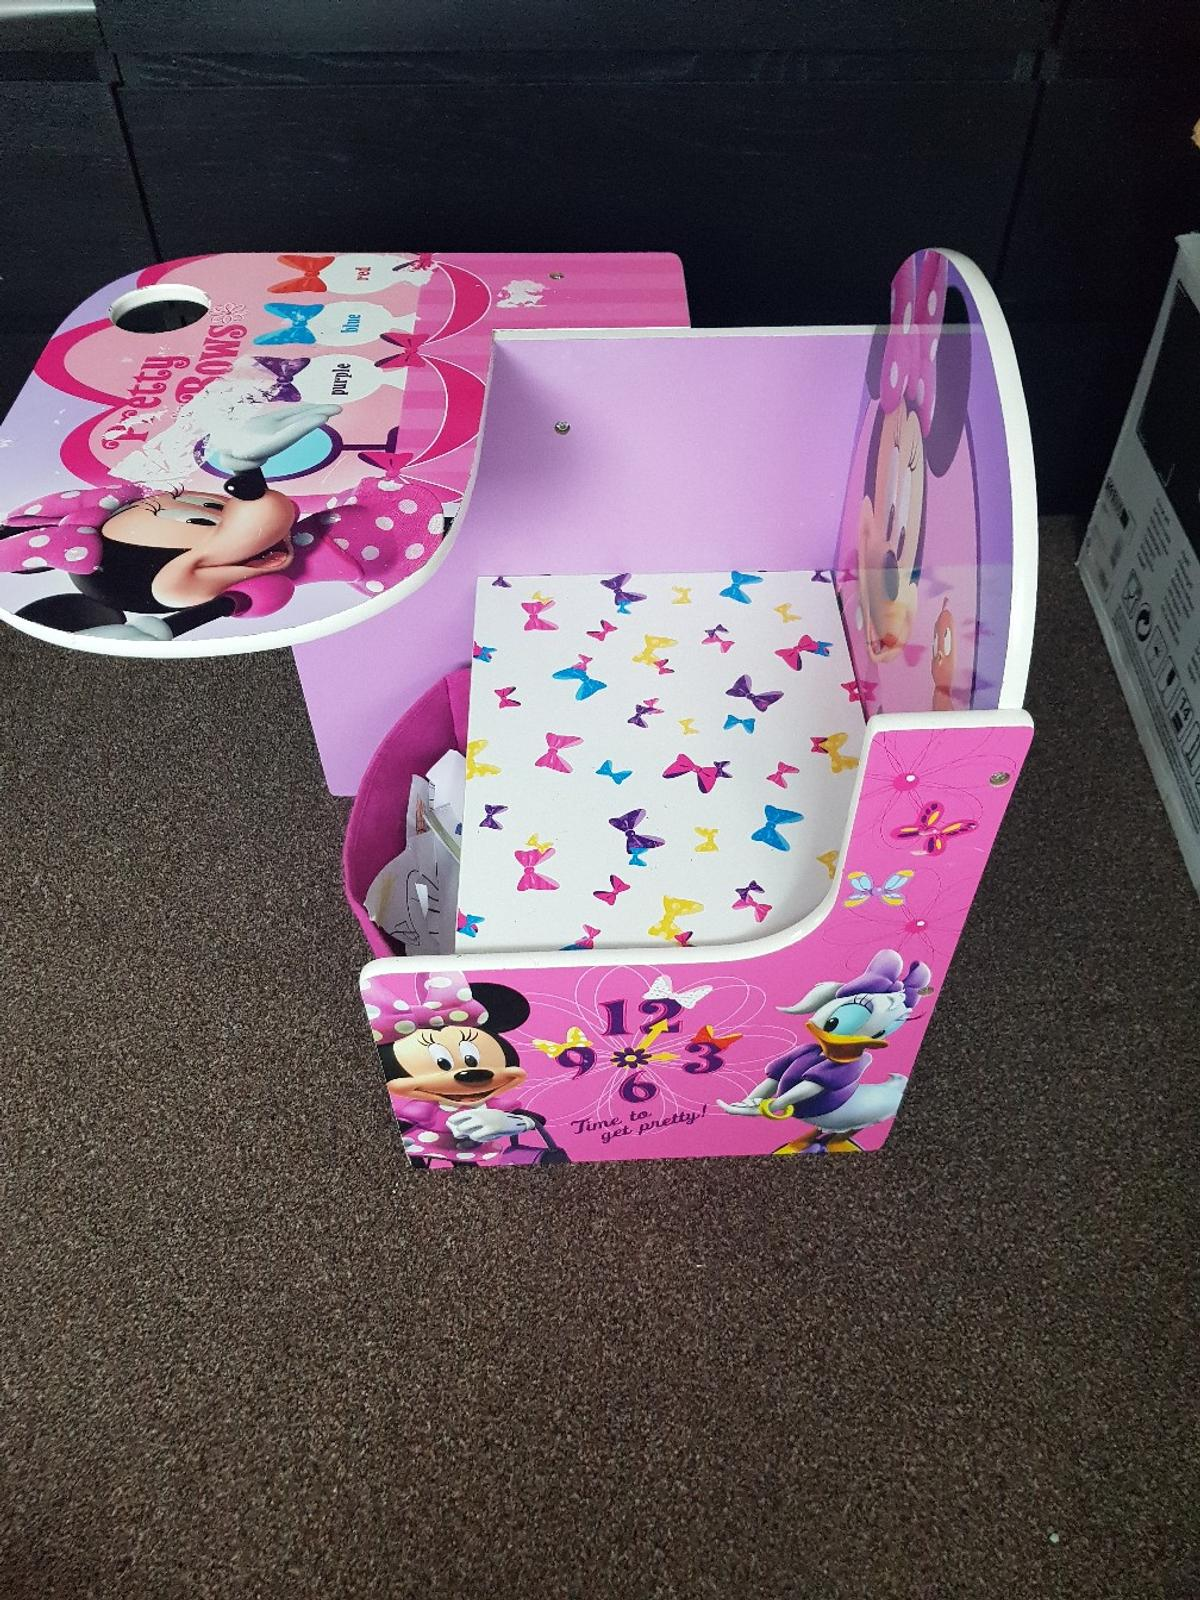 Outstanding Kids Table Desk Chair Minnie Mouse In St Helens For 25 00 Machost Co Dining Chair Design Ideas Machostcouk